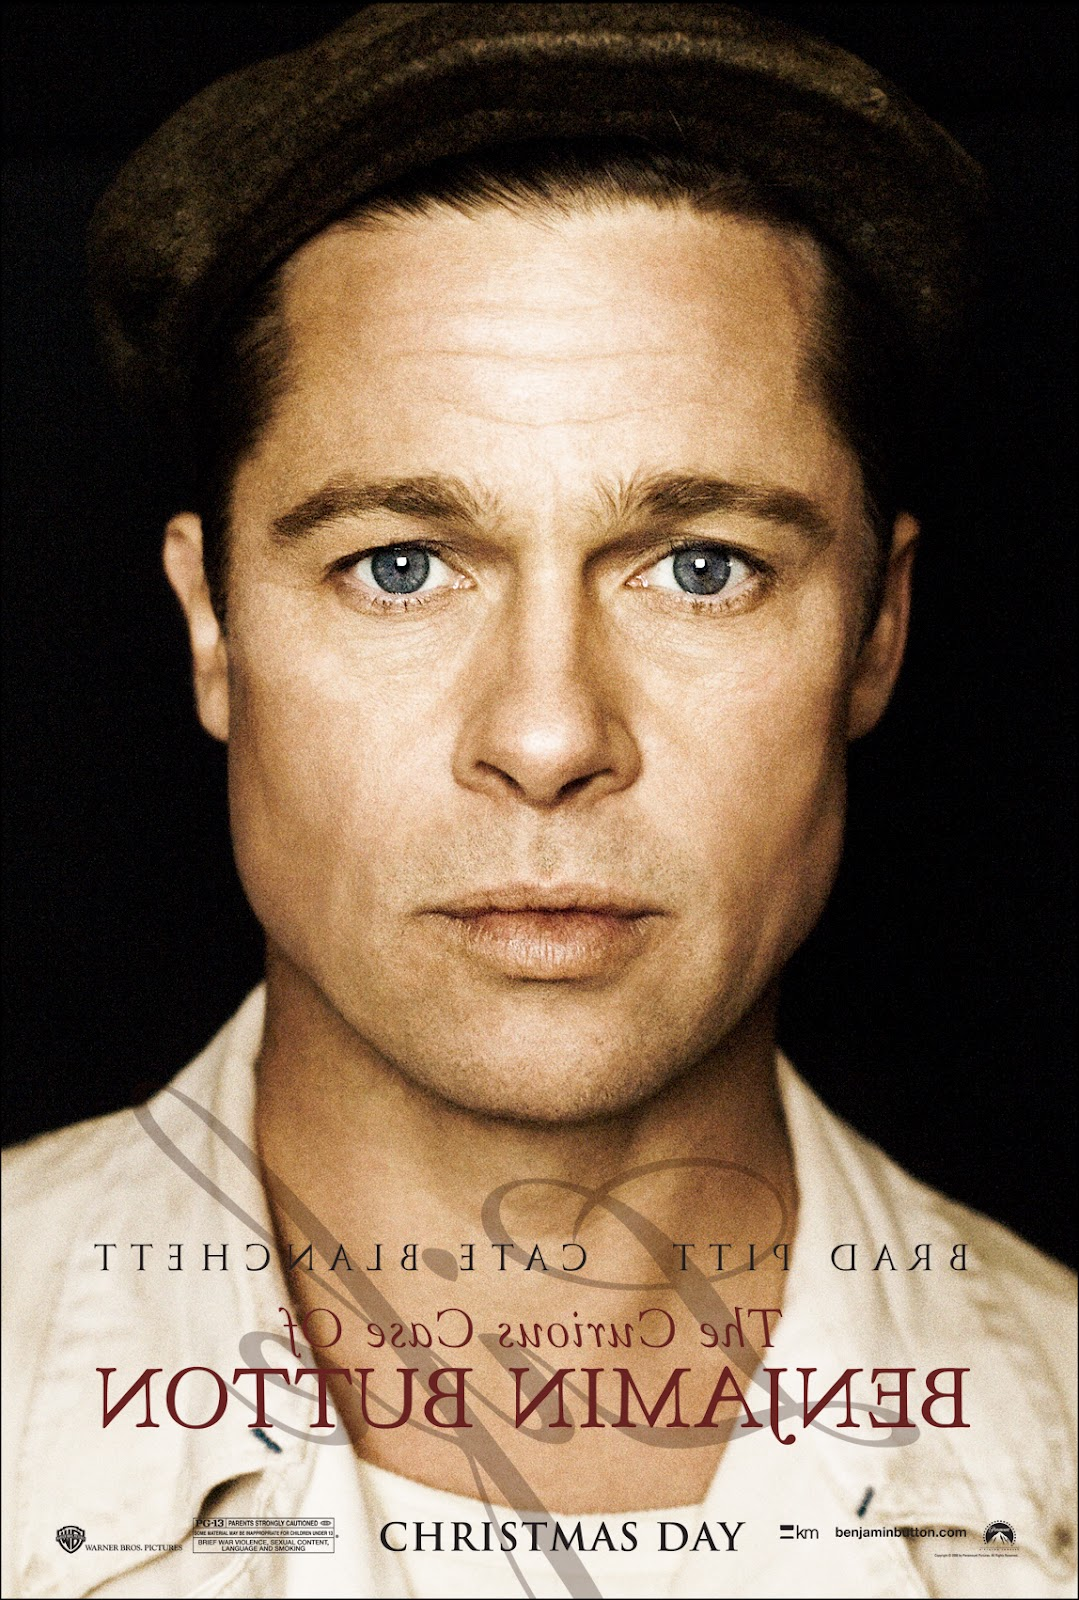 http://2.bp.blogspot.com/-iRJQ_v-Blf8/T8Zuzq1mydI/AAAAAAAAAn4/70FNe6kwA1E/s1600/brad_pitt_the_curious_case_of_benjamin_button_movie_poster_l.jpg